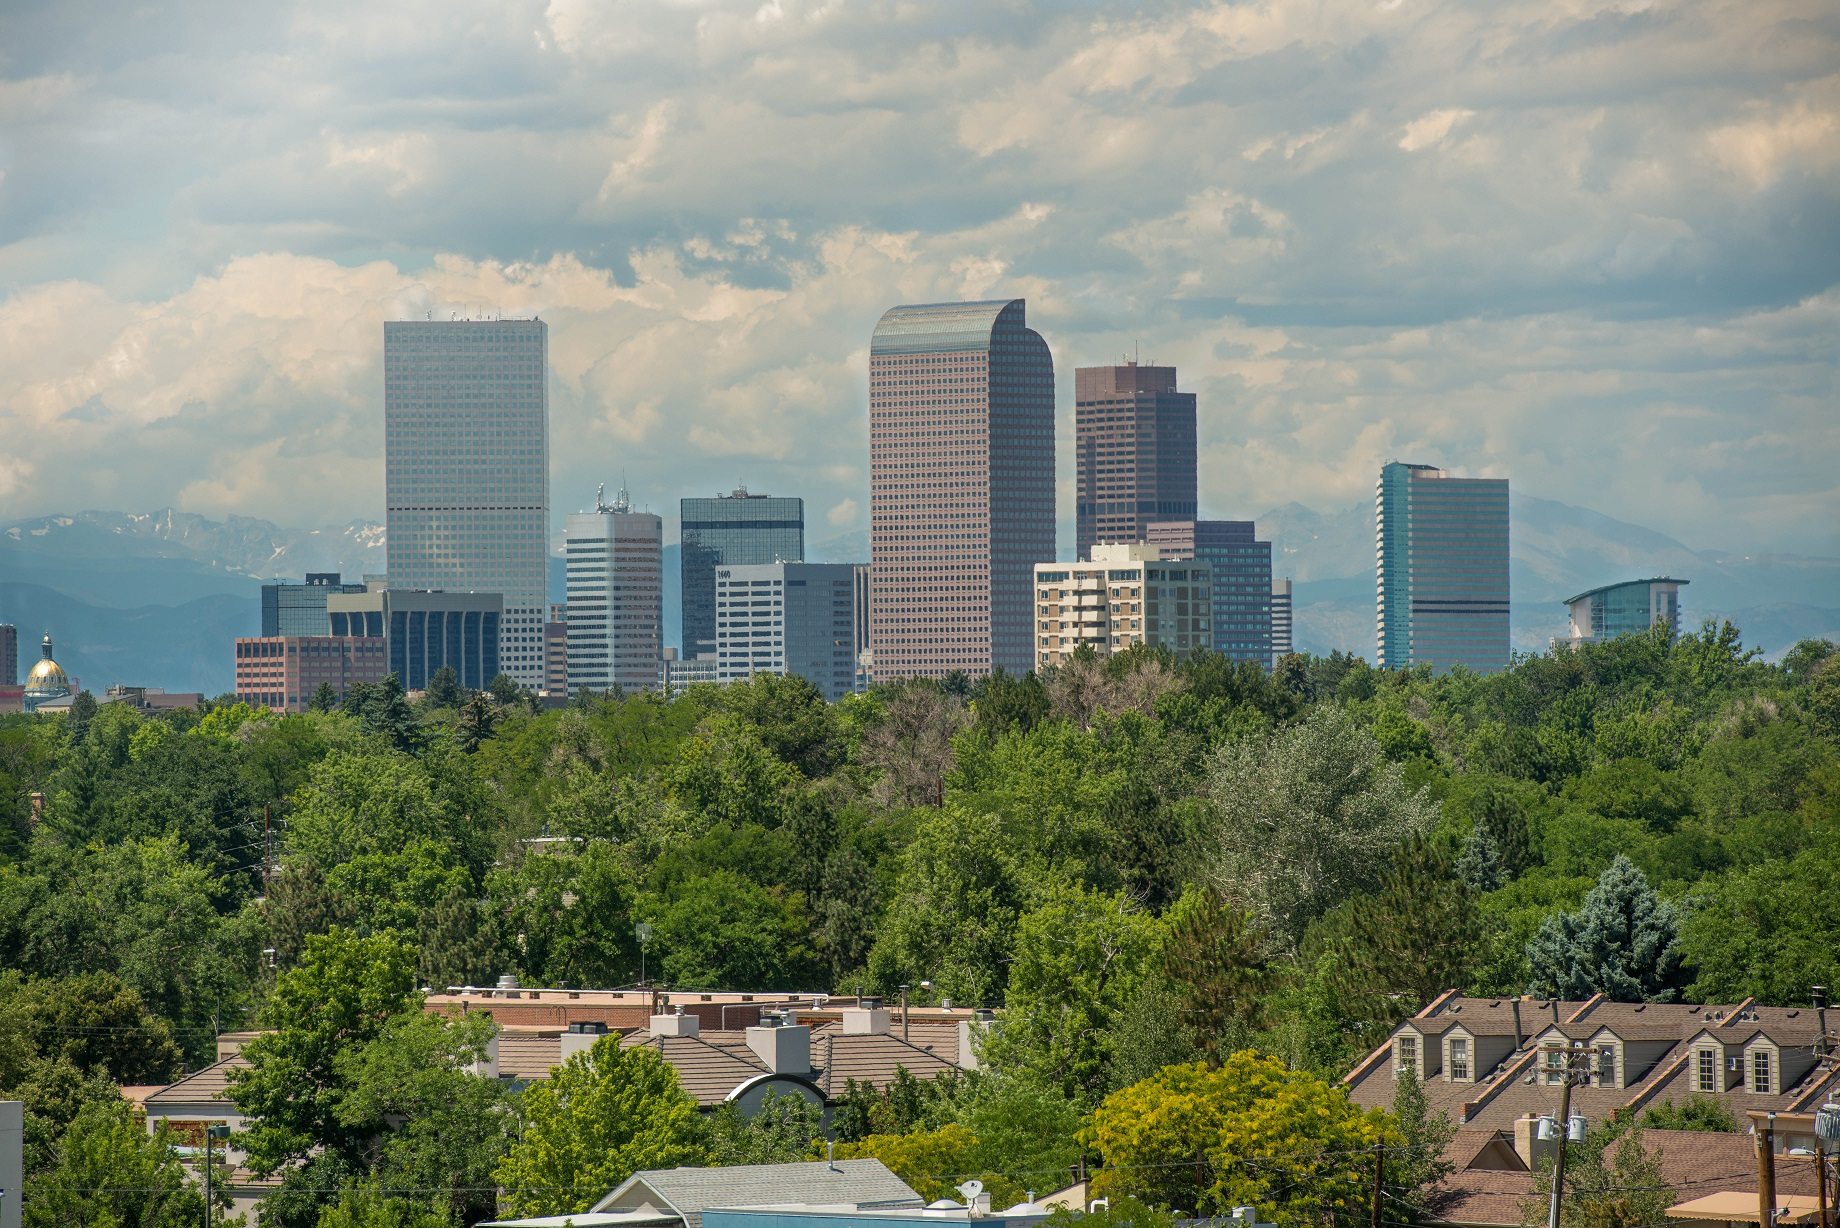 4 Fun Things to do in Denver